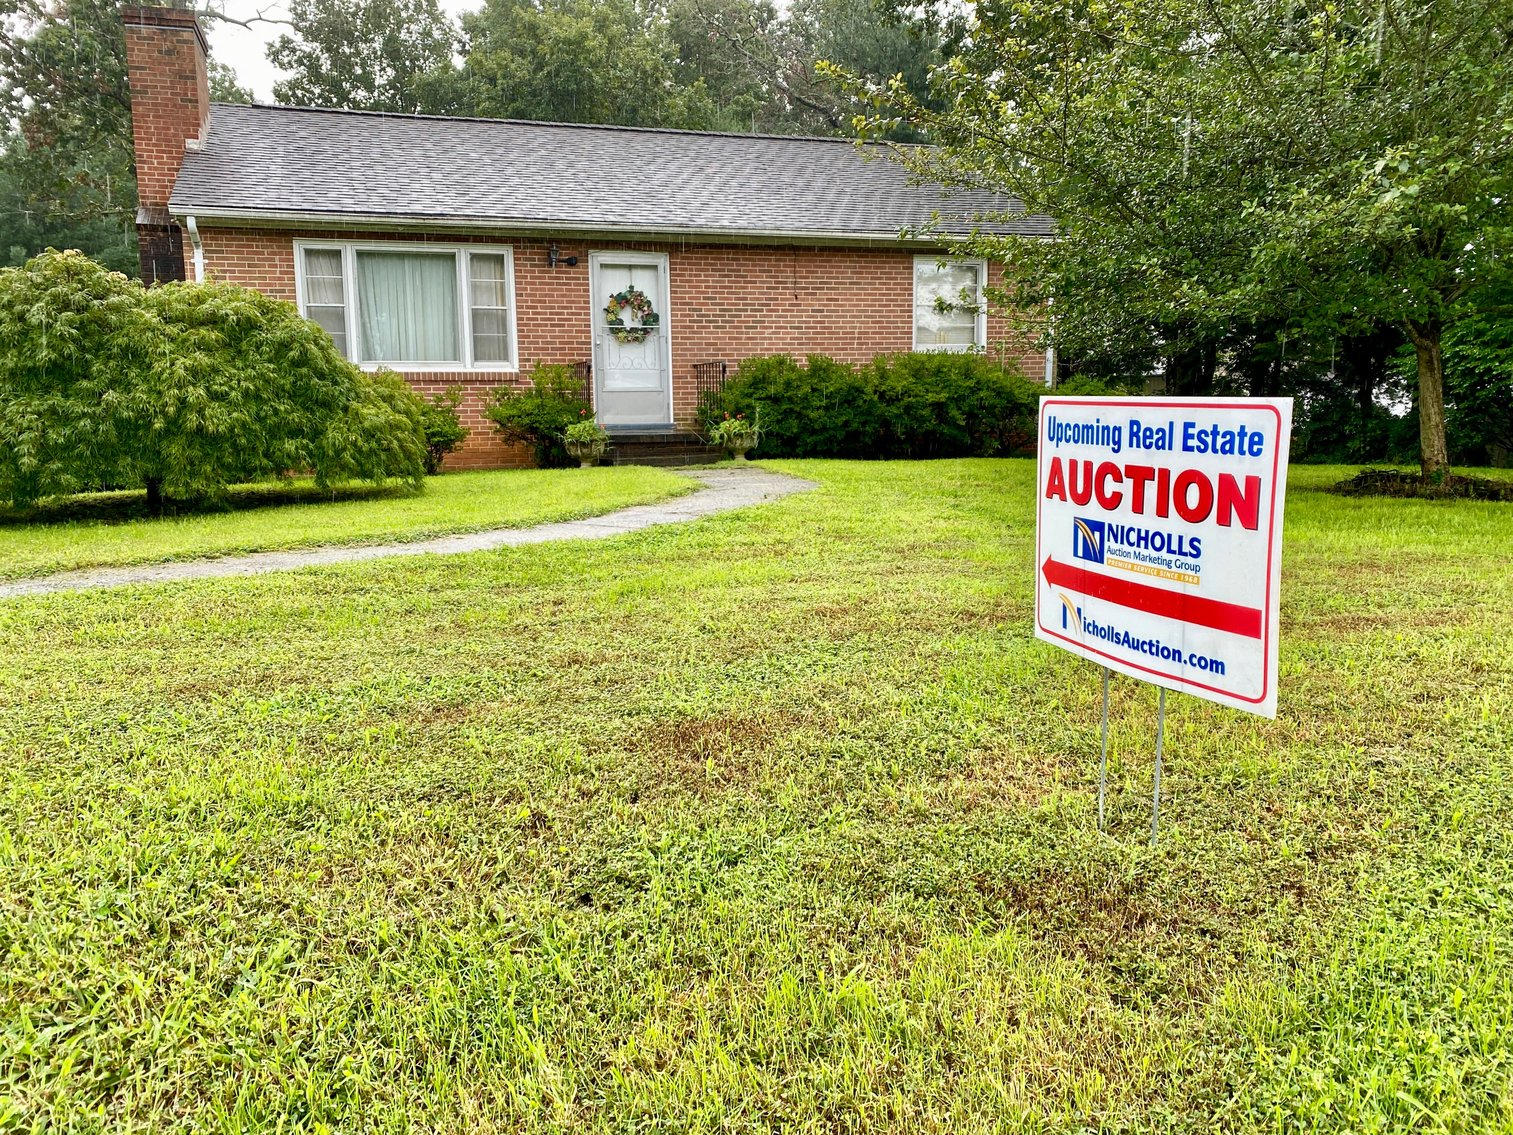 Image for 3 BR/2 BA Brick Home on 1.18 +/- Acres w/R6 Zoning Only 3.5 Miles From UVA--SELLING to the HIGHEST BIDDER!!